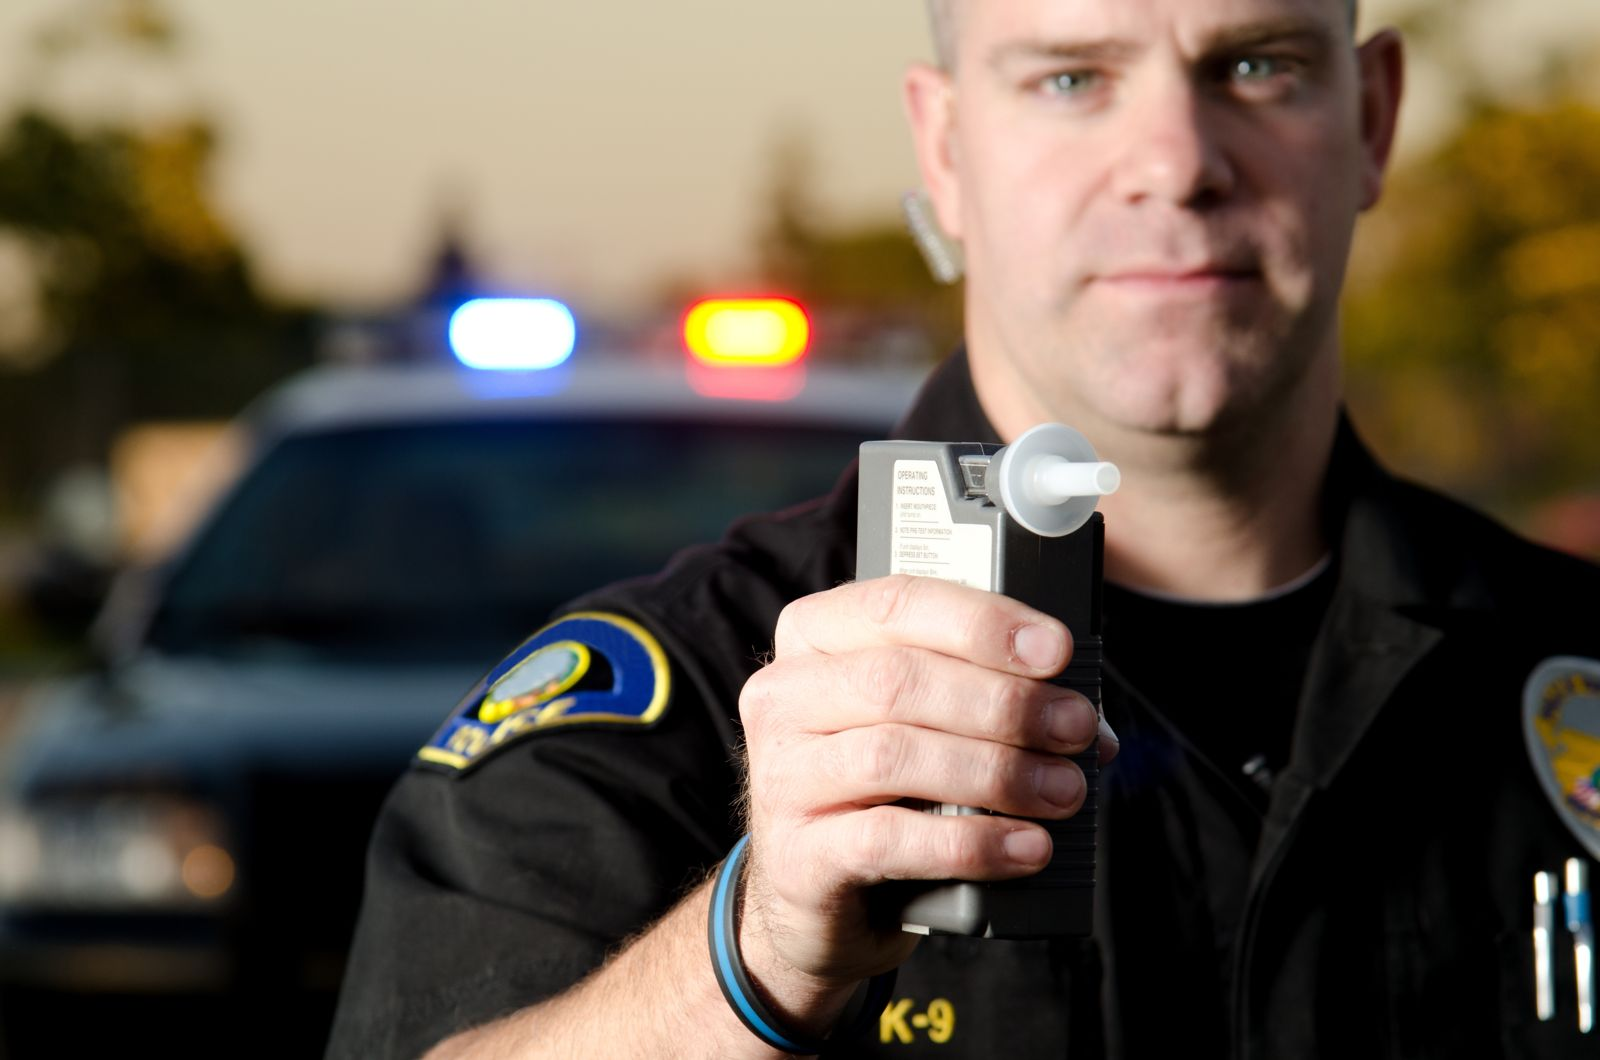 A Fort Lauderdale Police Officer is holding out a breathalyzer machine to try and get a South Floridian to give a breath sample as part of a DUI investigation